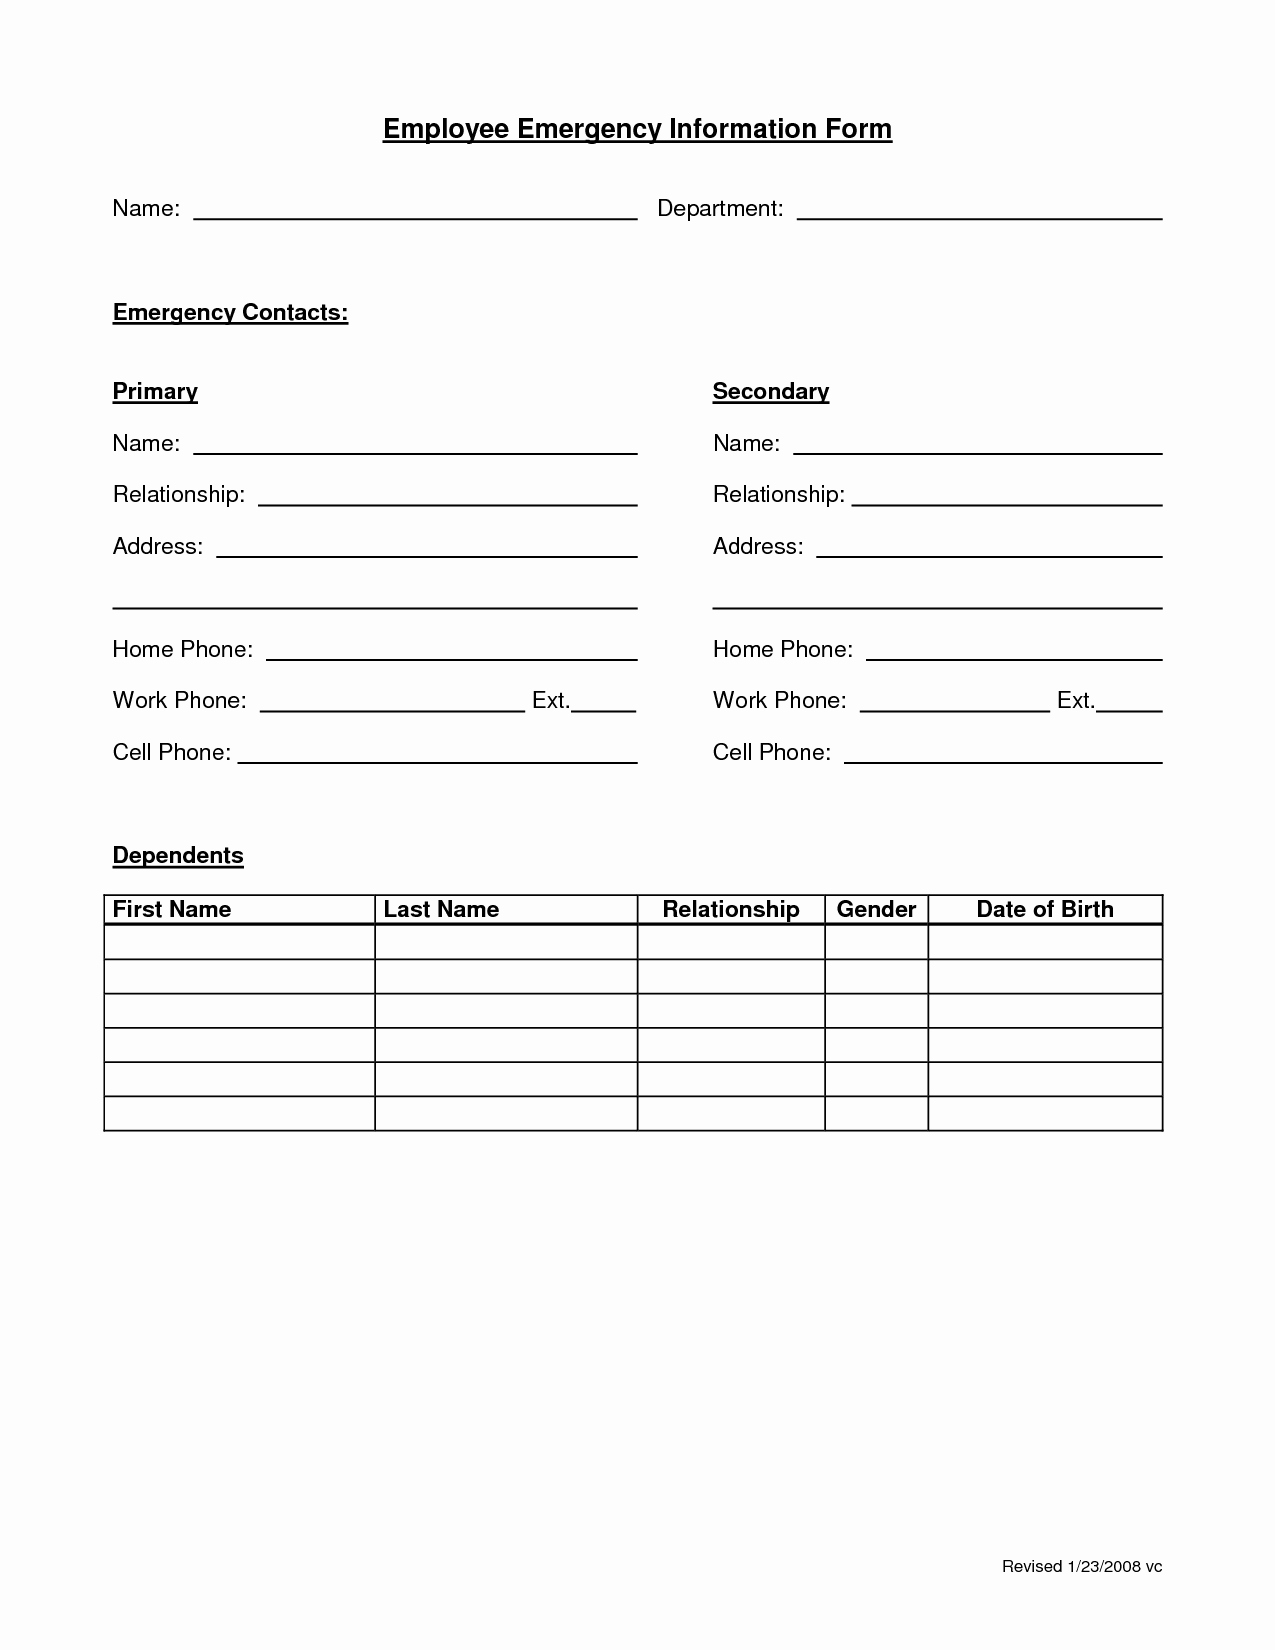 Emergency Contacts form Templates Best Of Employee Emergency form Employee forms